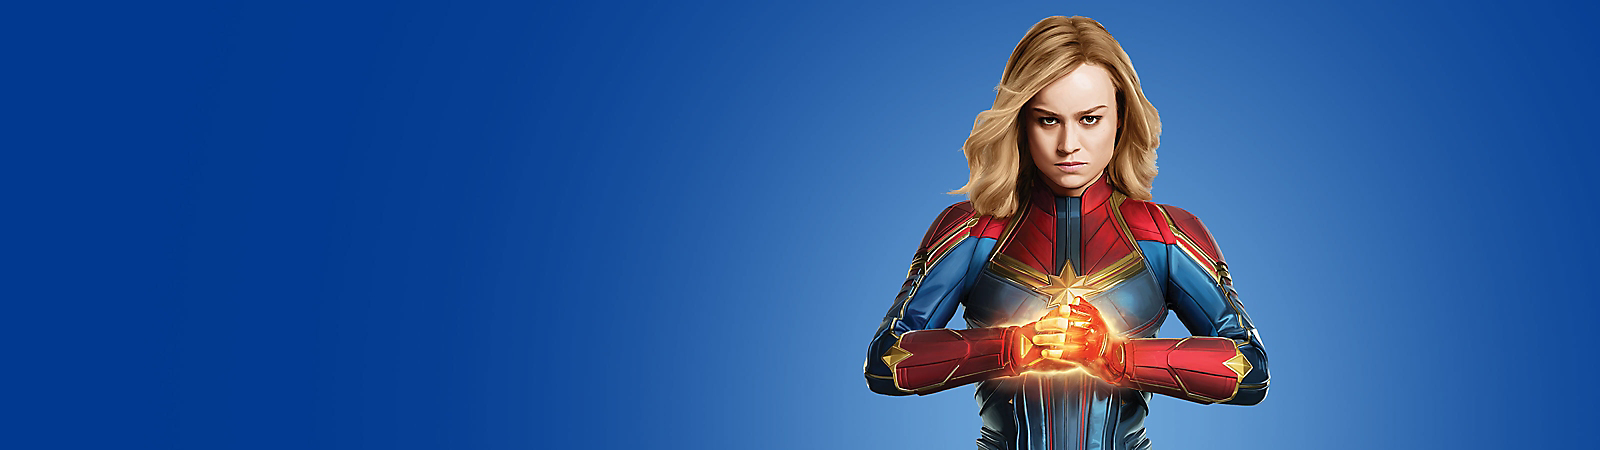 Background image of Captain Marvel